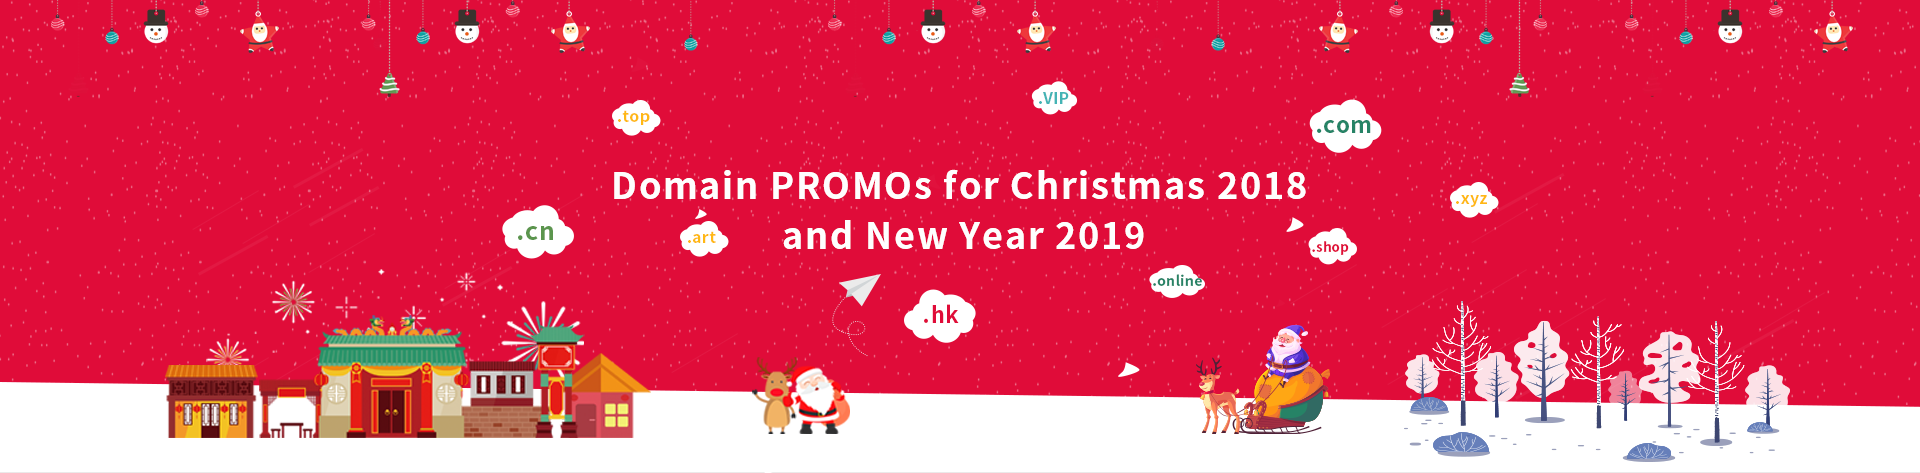 NiceNIC is offering domain registrations and domain transfers with very competitive prices for Christmas 2018 and New Year 2019.